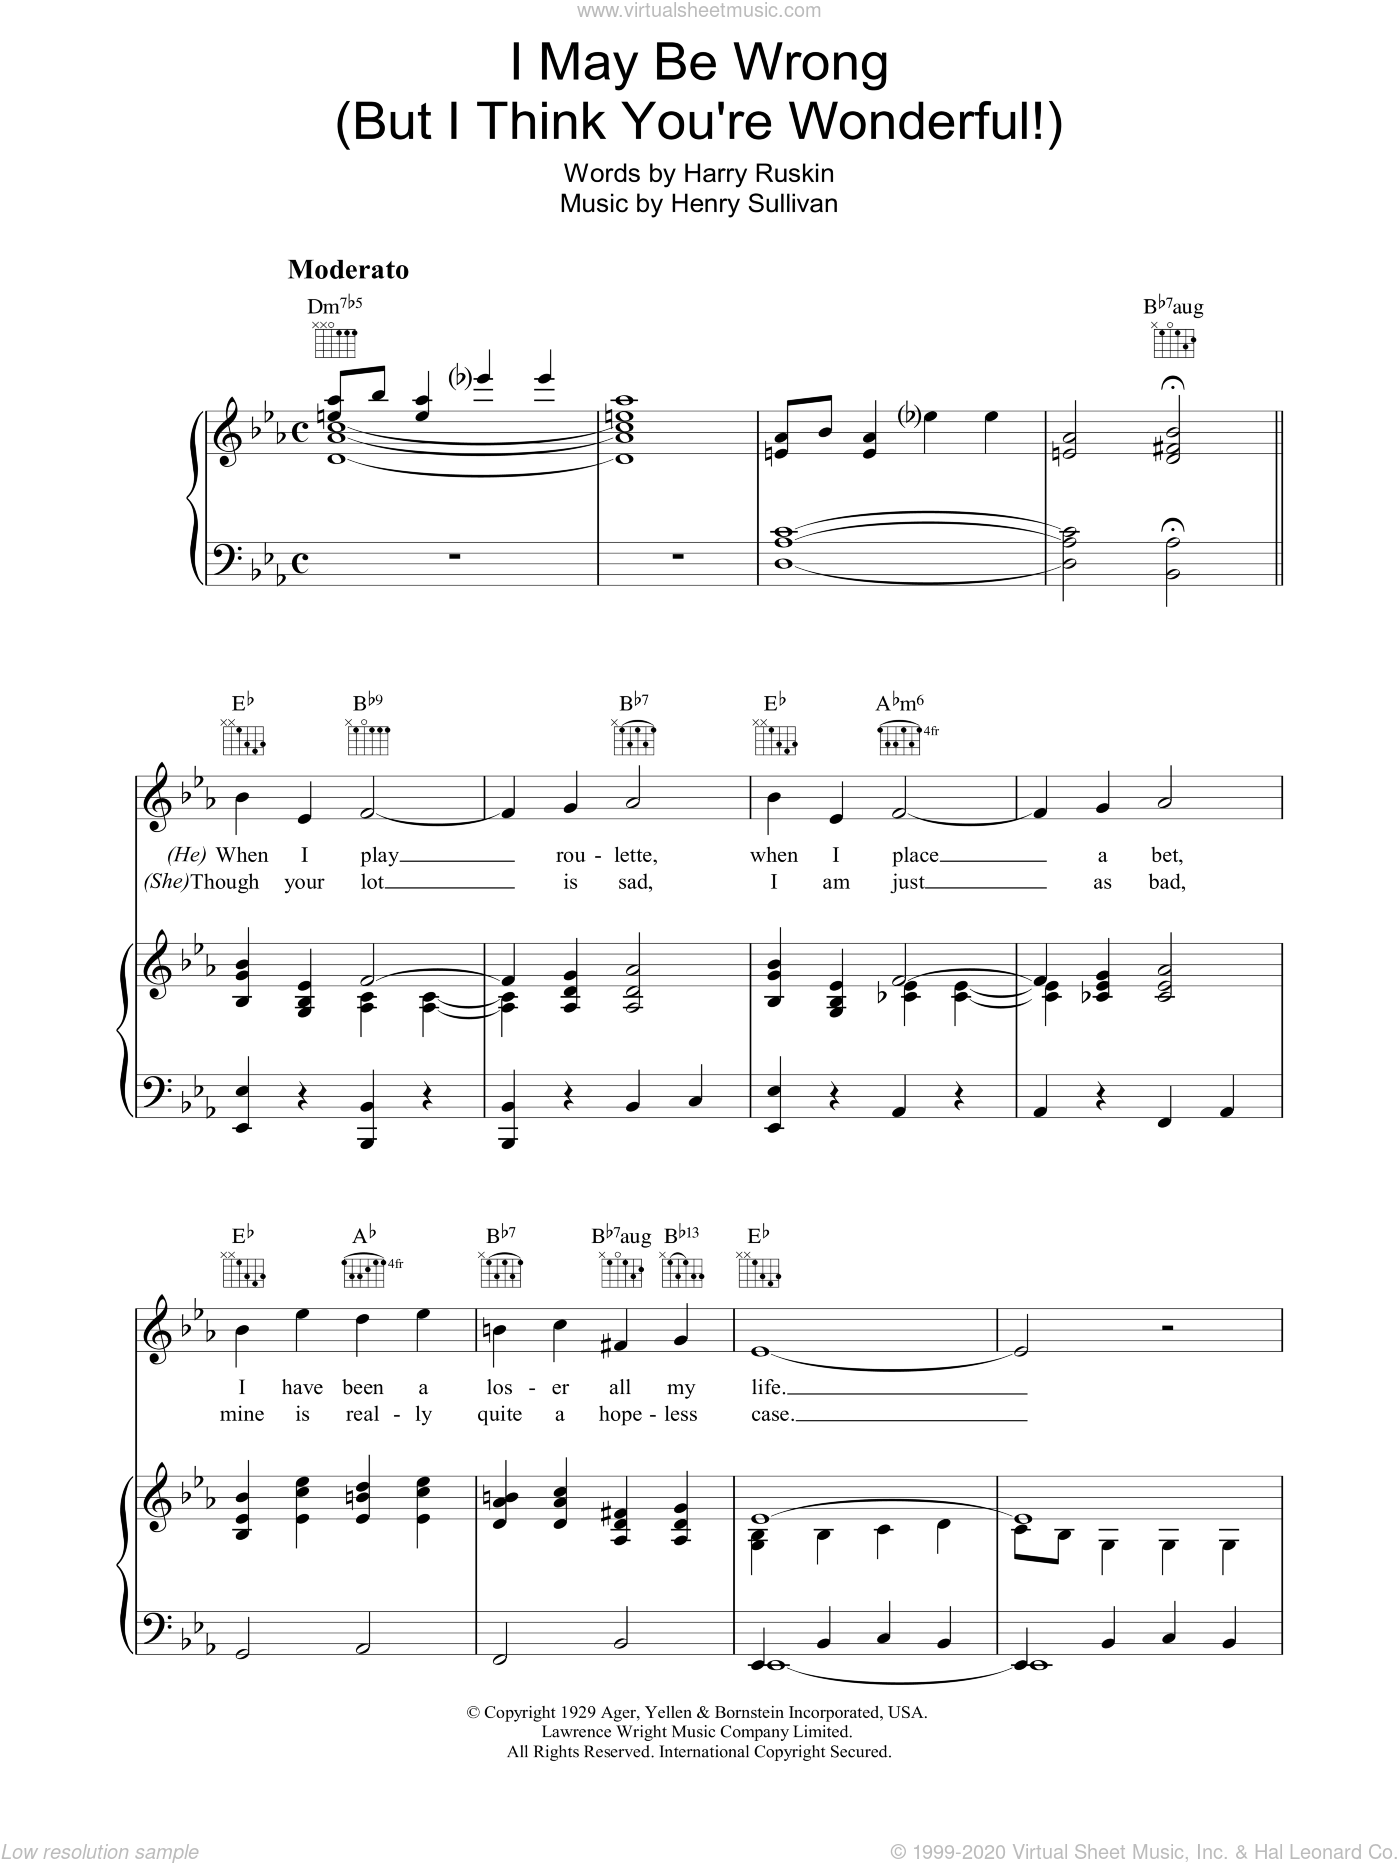 I May Be Wrong (But I Think You're Wonderful) sheet music for voice, piano or guitar by Harry Ruskin. Score Image Preview.